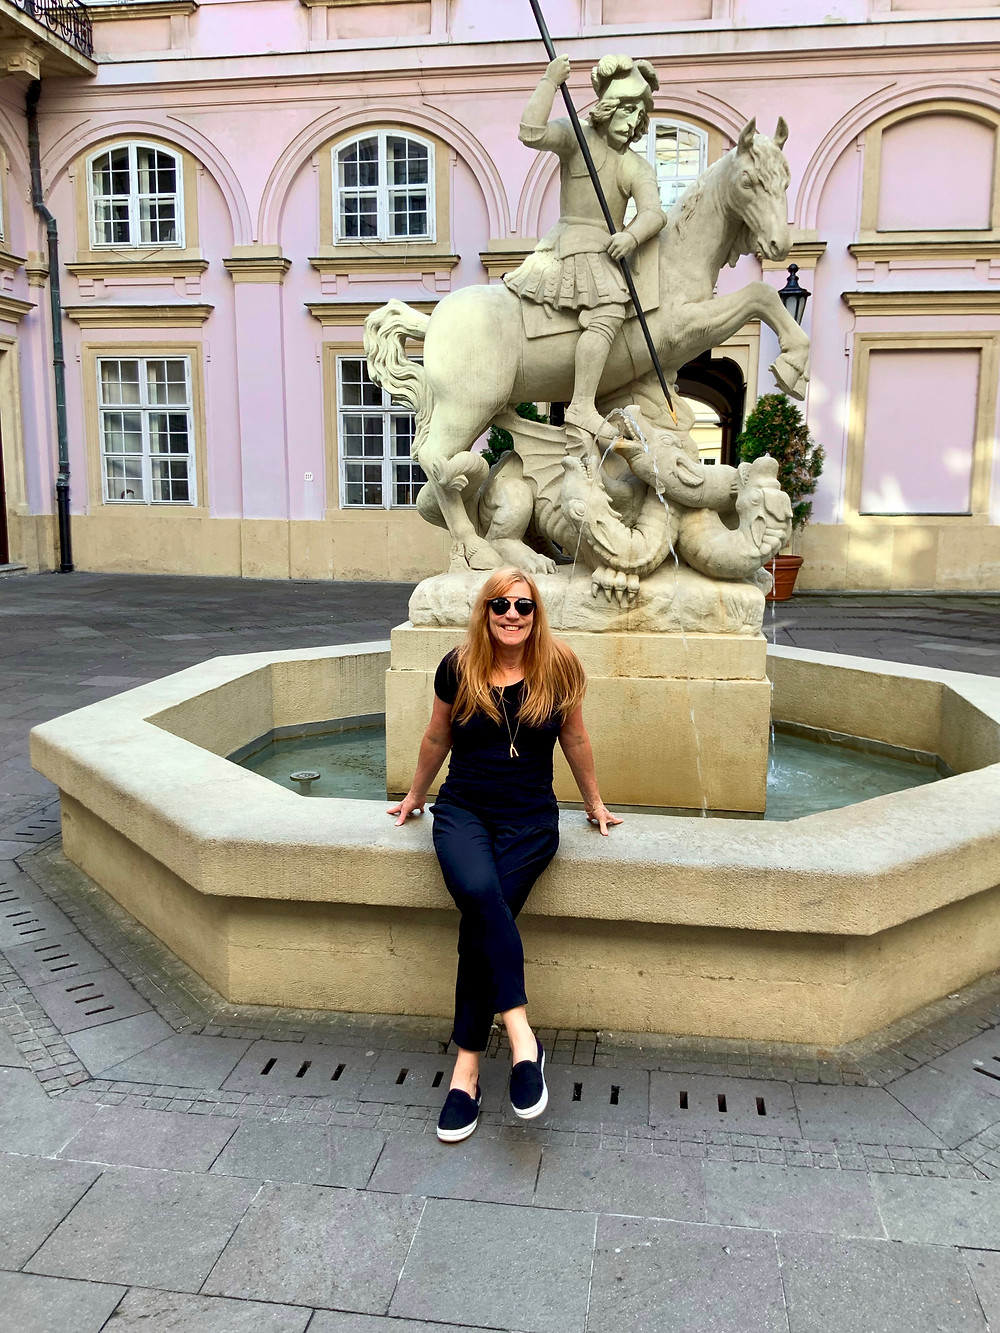 taking a break at the Saint George Fountain in the pretty Primate's Palace courtyard